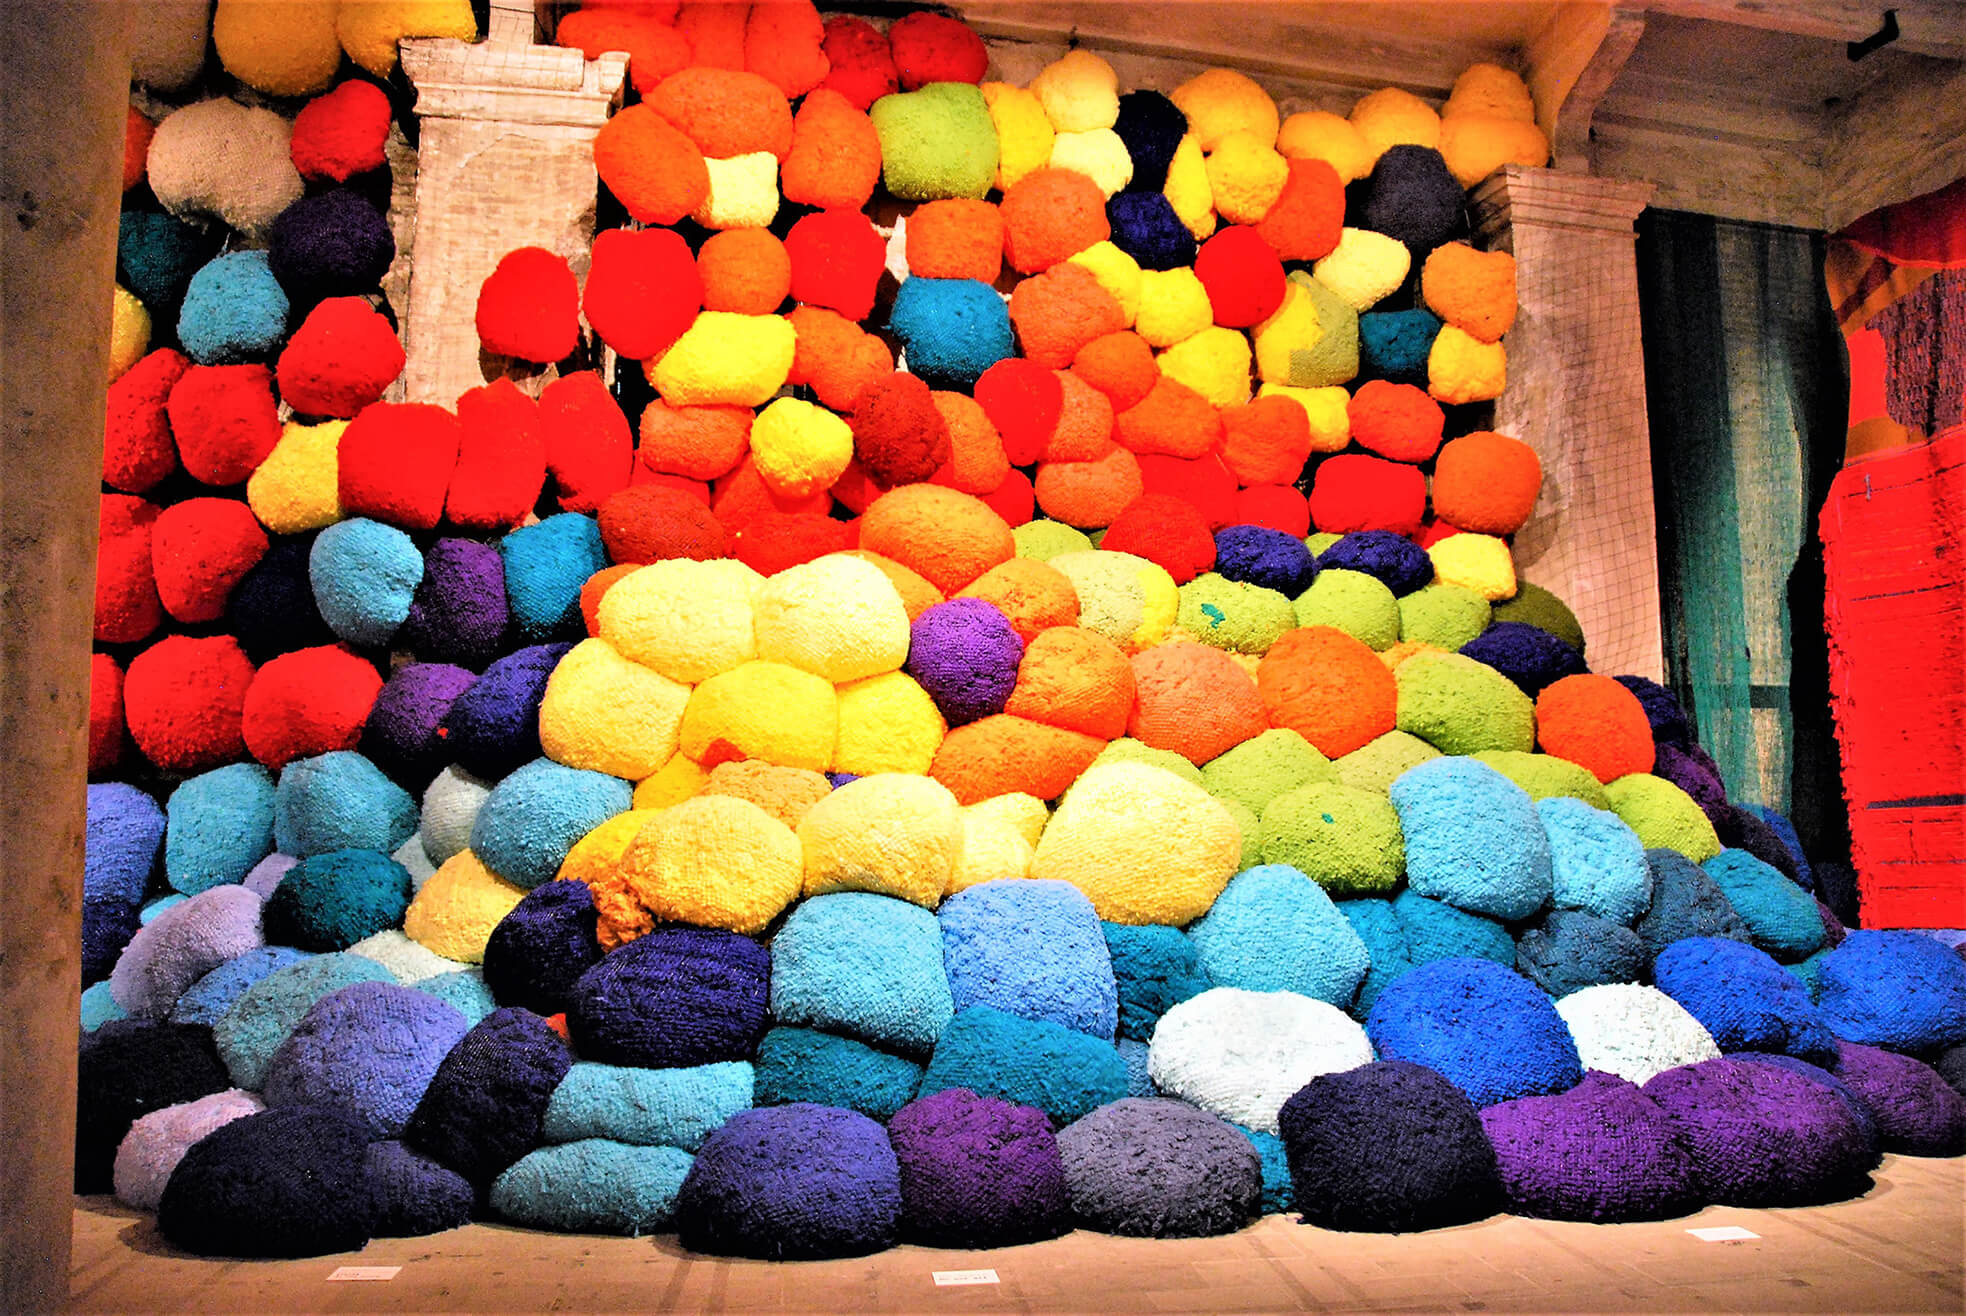 moderne_escalade-beyond-chromatic-lands-sheila-hicks-usa.jpg